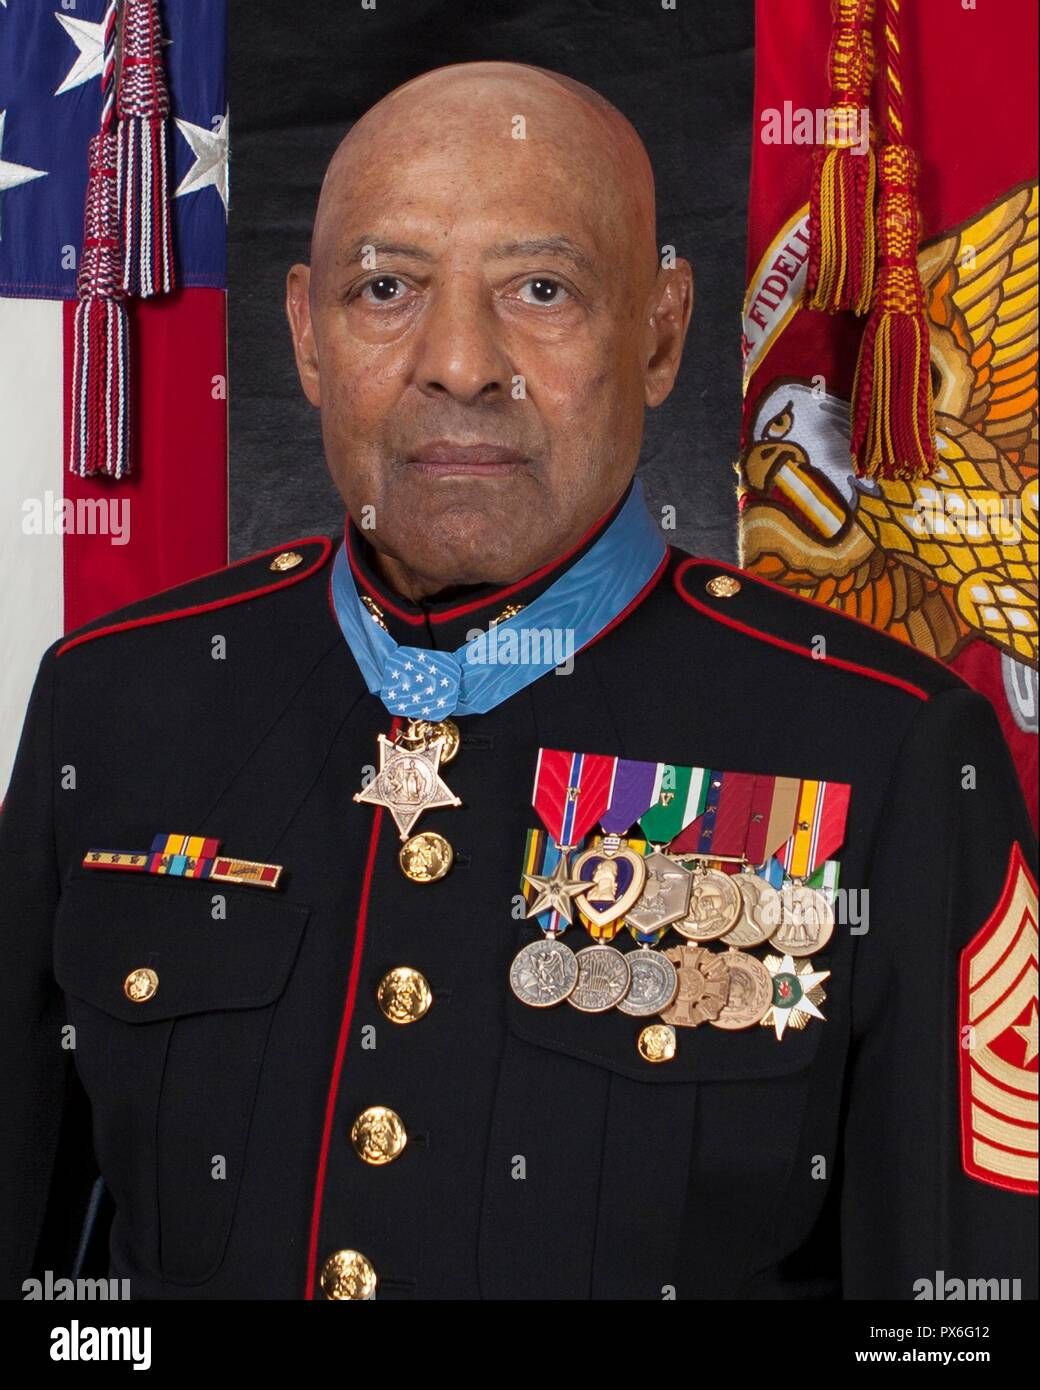 Medal of Honor recipient retired U.S. Marine Sgt. Maj. John Canley poses with his medal for his official portrait at the Pentagon October 18, 2018 in Washington, DC. Canley received the nations highest honor for actions during the Battle of Hue in the Vietnam War. Stock Photo